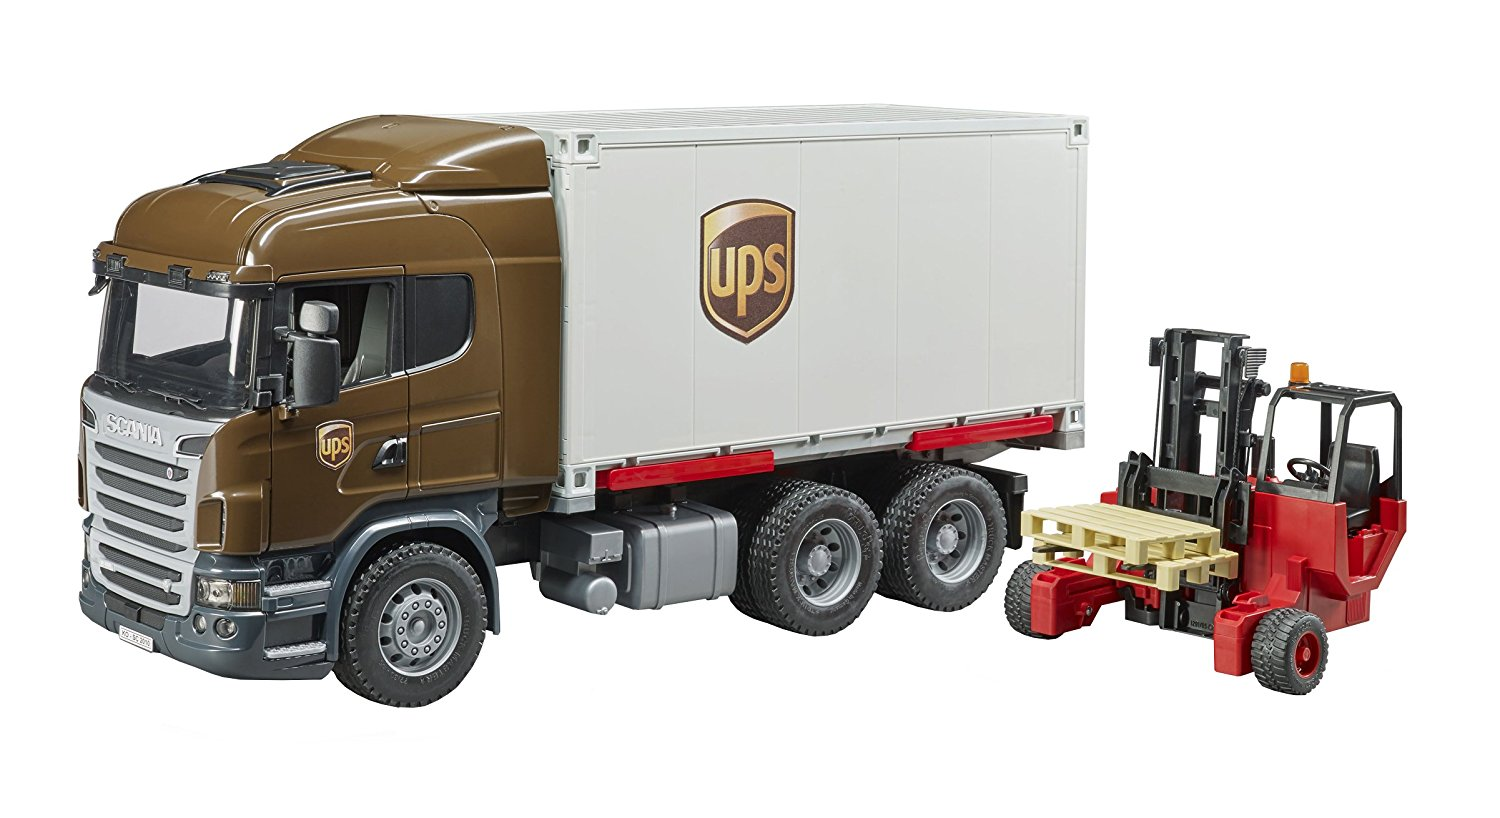 Bruder #03581 Scania R-Series UPS Logistics Truck with Forklift - New Factory Sealed